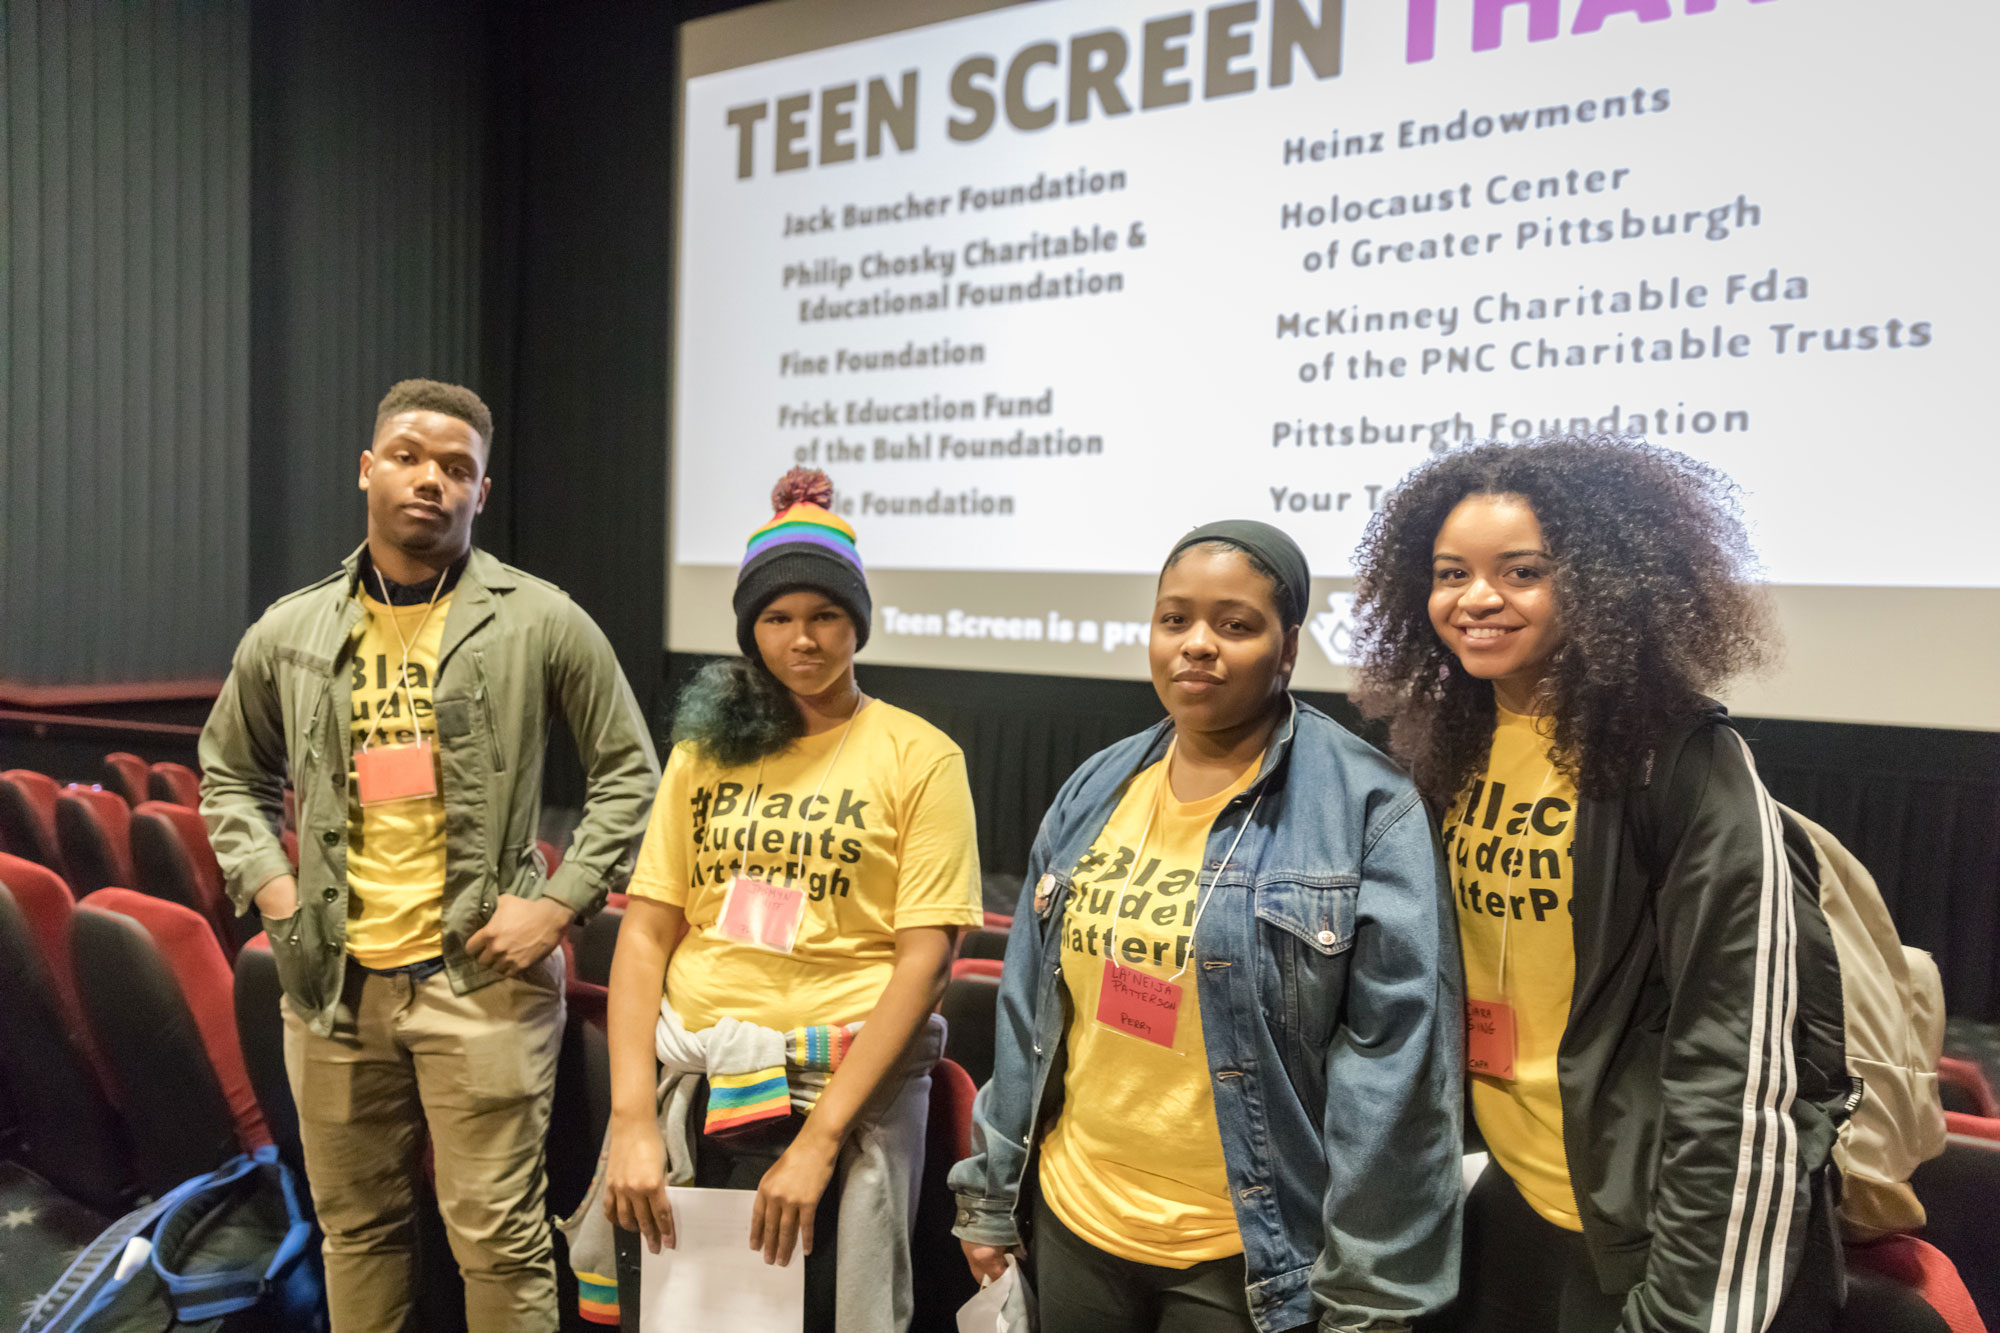 Teen screen students